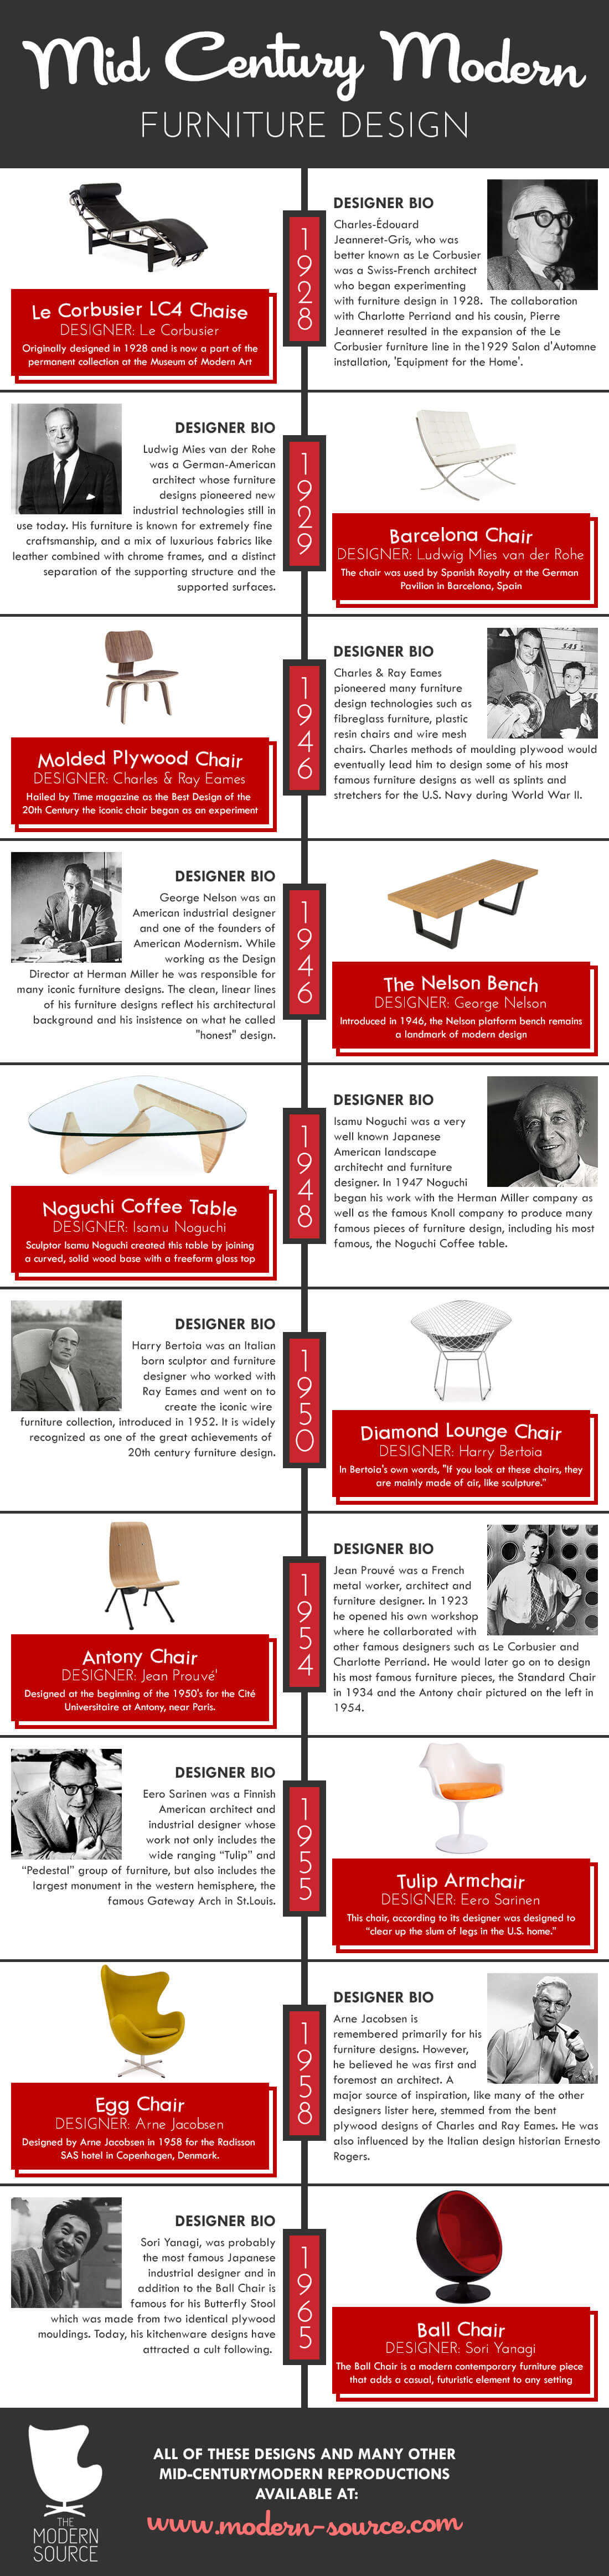 A History Of Mid Century Modern Furniture Design INFOGRAPHIC